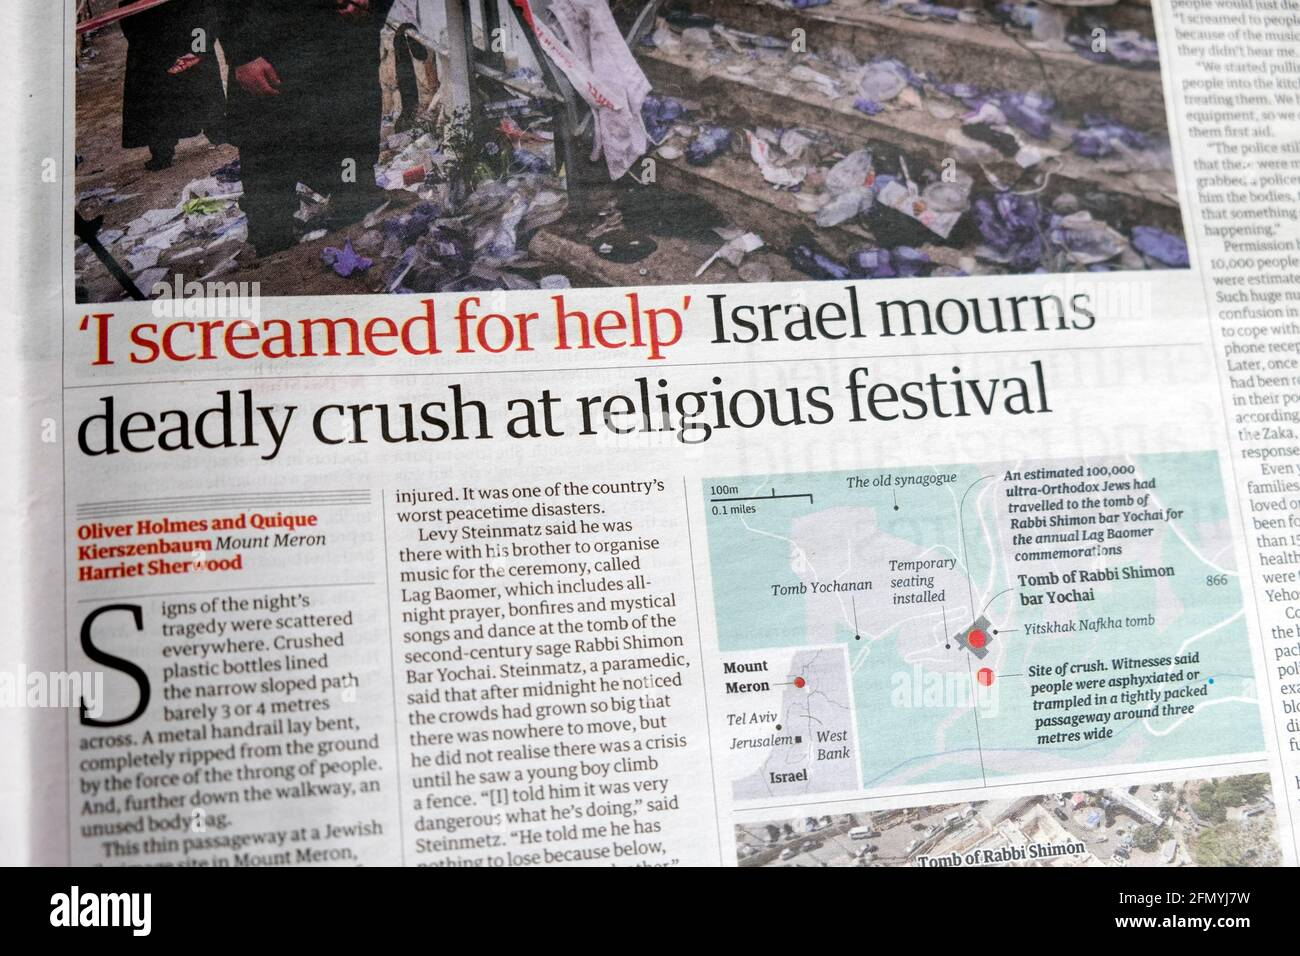 """'I screamed for help' """"Israel mourns deadly crush at religious festival"""" newspaper headline Mount Meron article in Guardian on 1 May 2021 London  UK Stock Photo"""